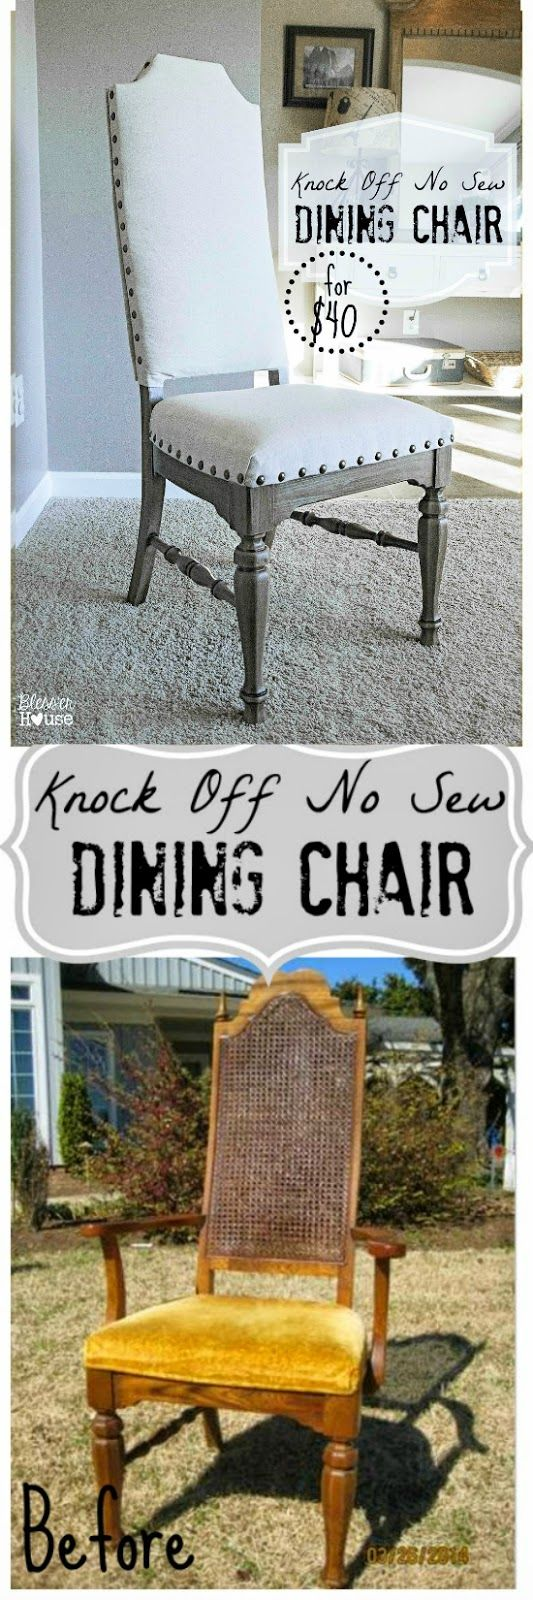 Diy dining table makeover - Best 25 Dining Chair Makeover Ideas On Pinterest Kitchen Chair Makeover Reupholster Dining Chair And Dining Chair Redo